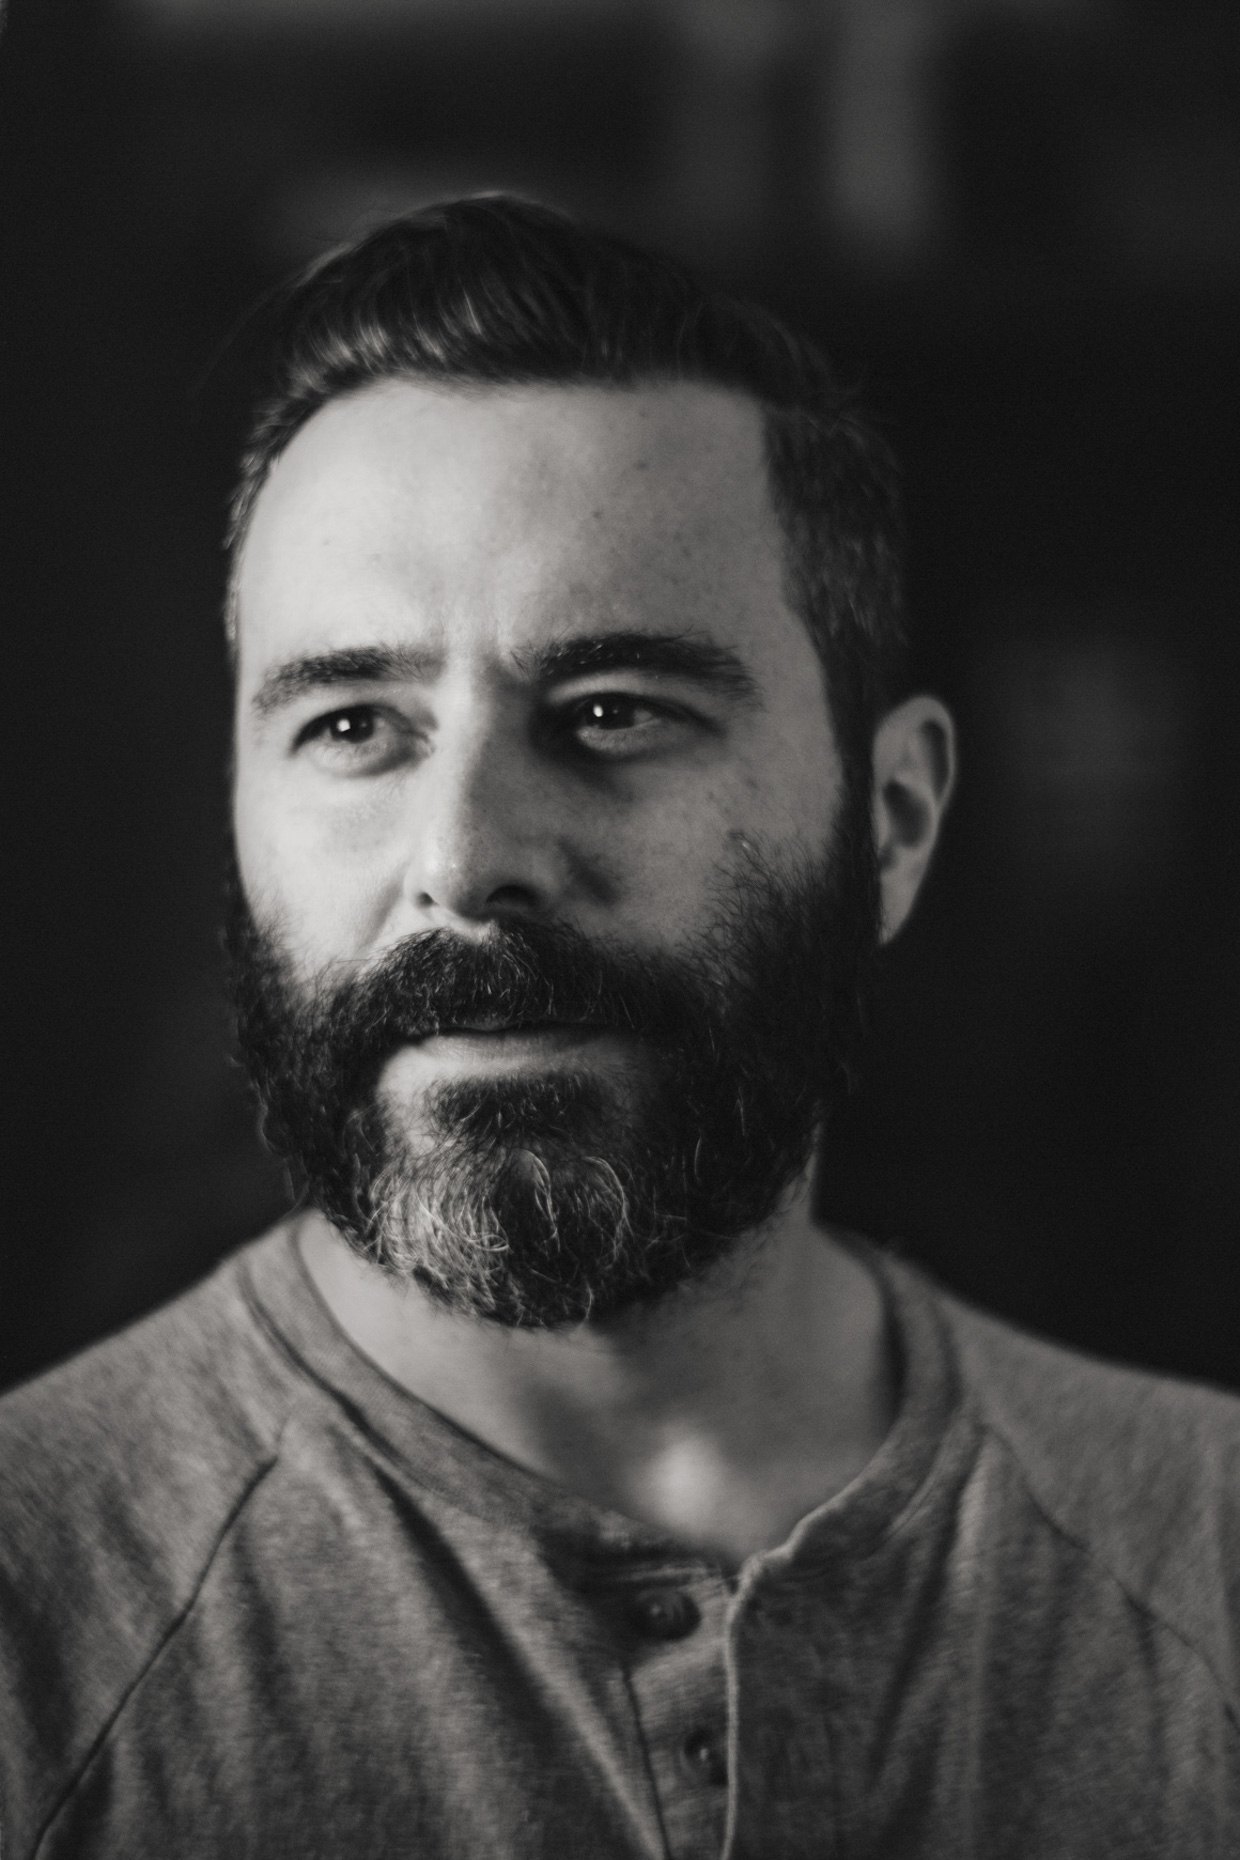 Tight B&W editorial portrait of Instagram Creative Shop creative director Spencer Mandell Photo by Andy Batt